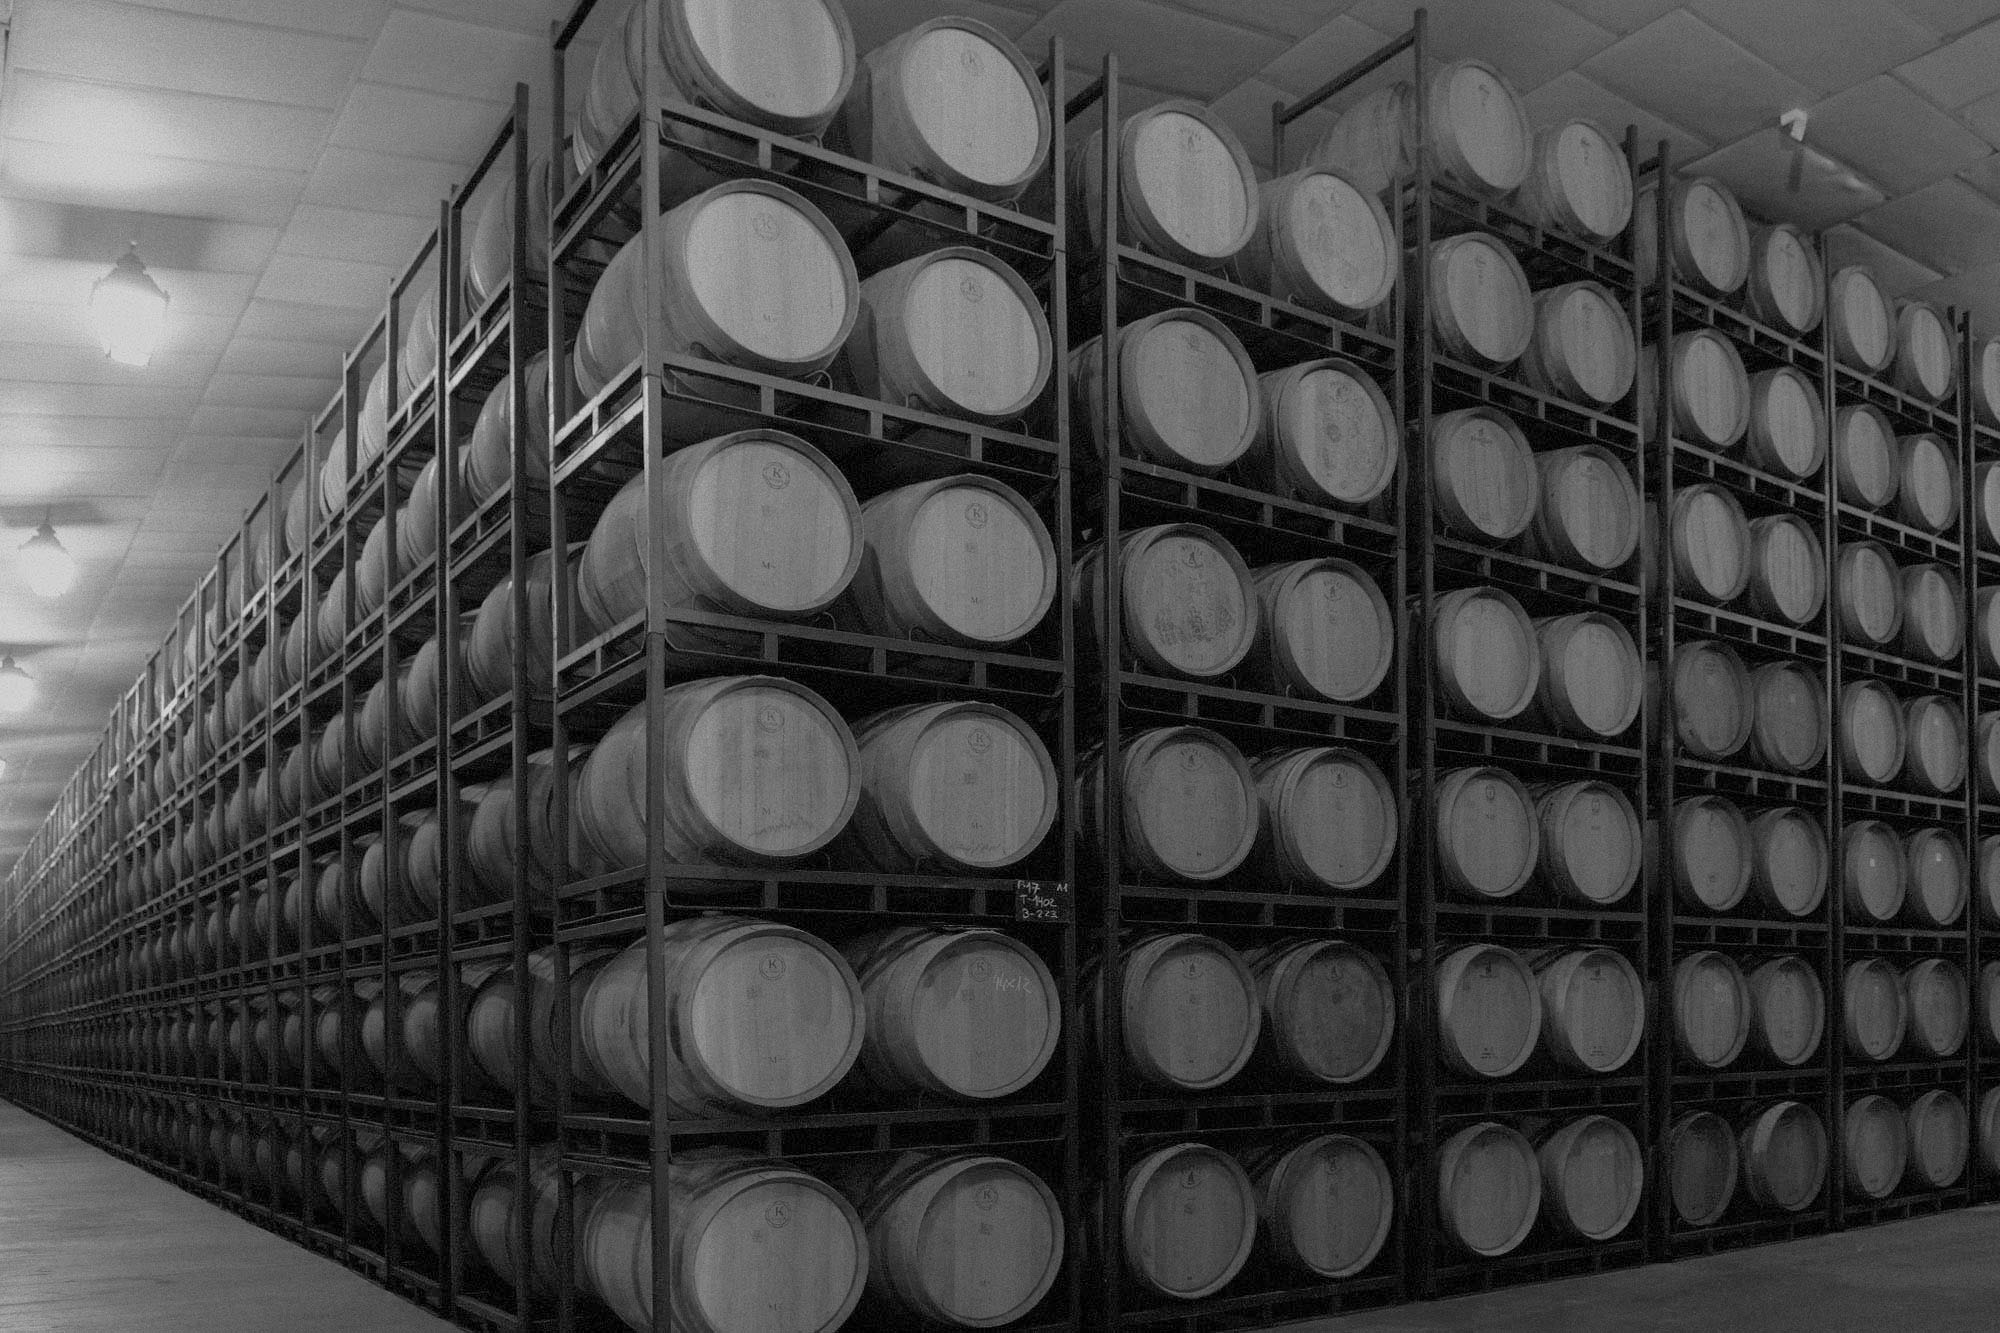 Barrel cellar